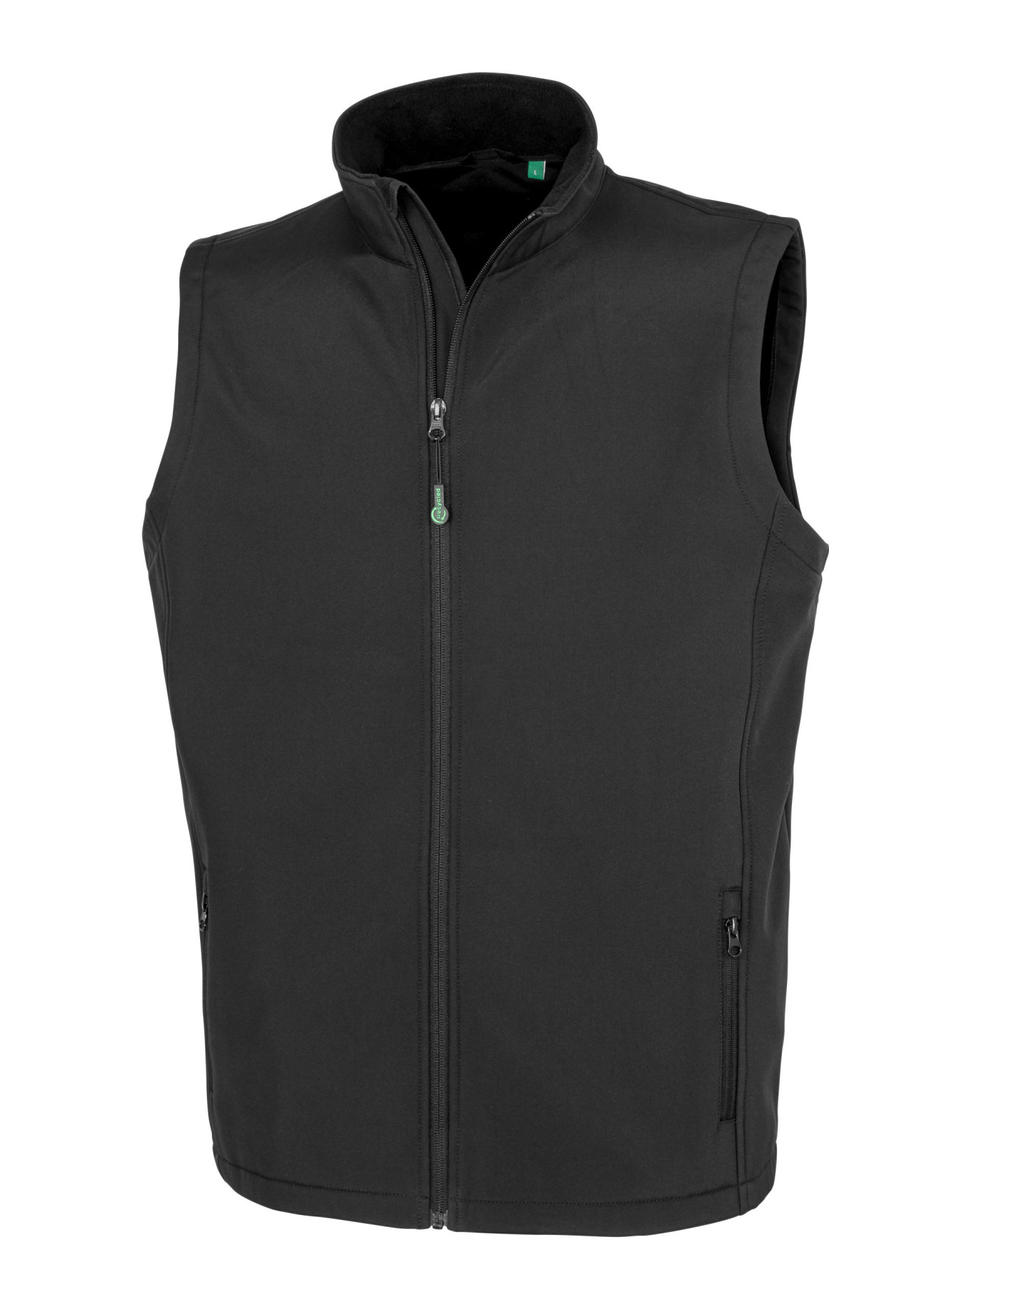 Men's Recycled 2-Layer Printable Softshell B/W